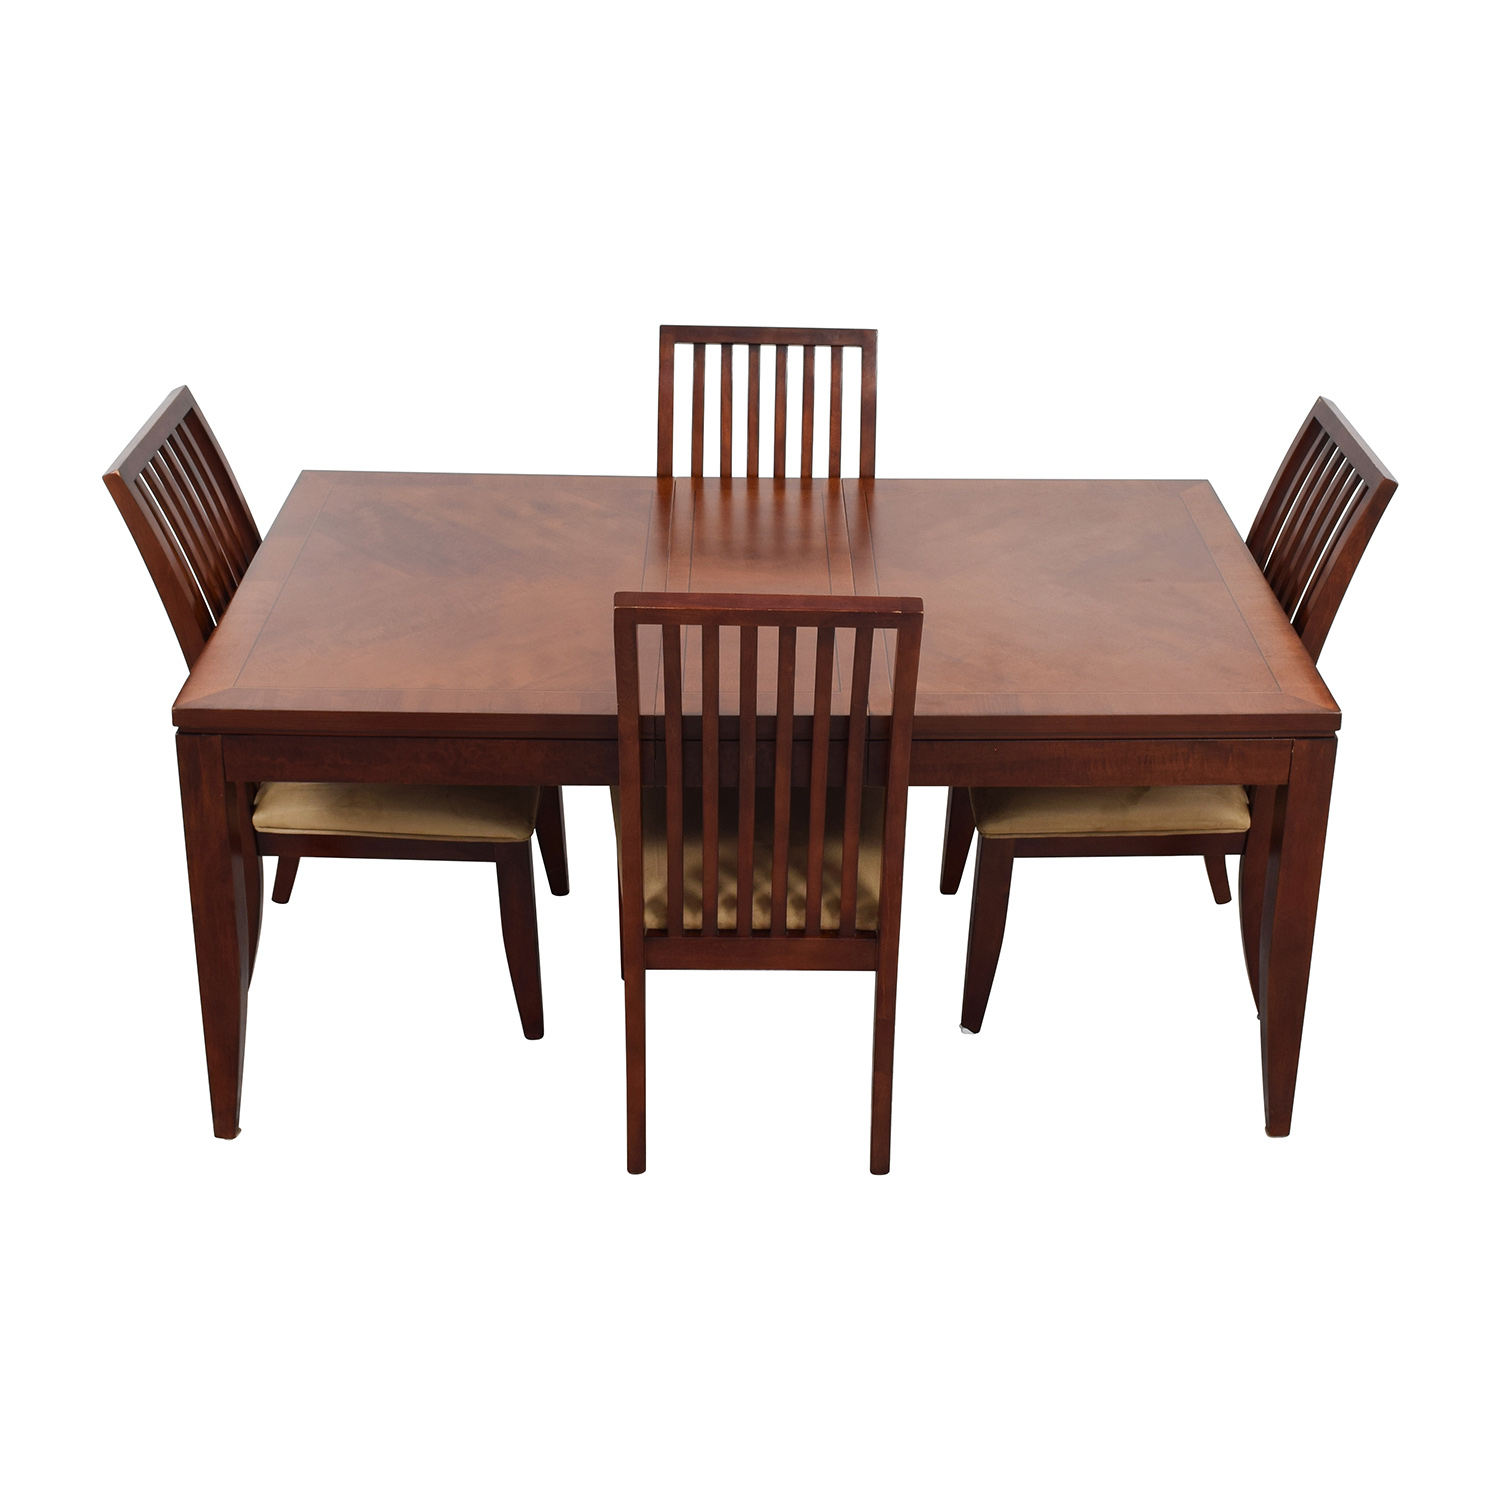 Macys Macys Metropolitan Dining Set with Four Chairs nj